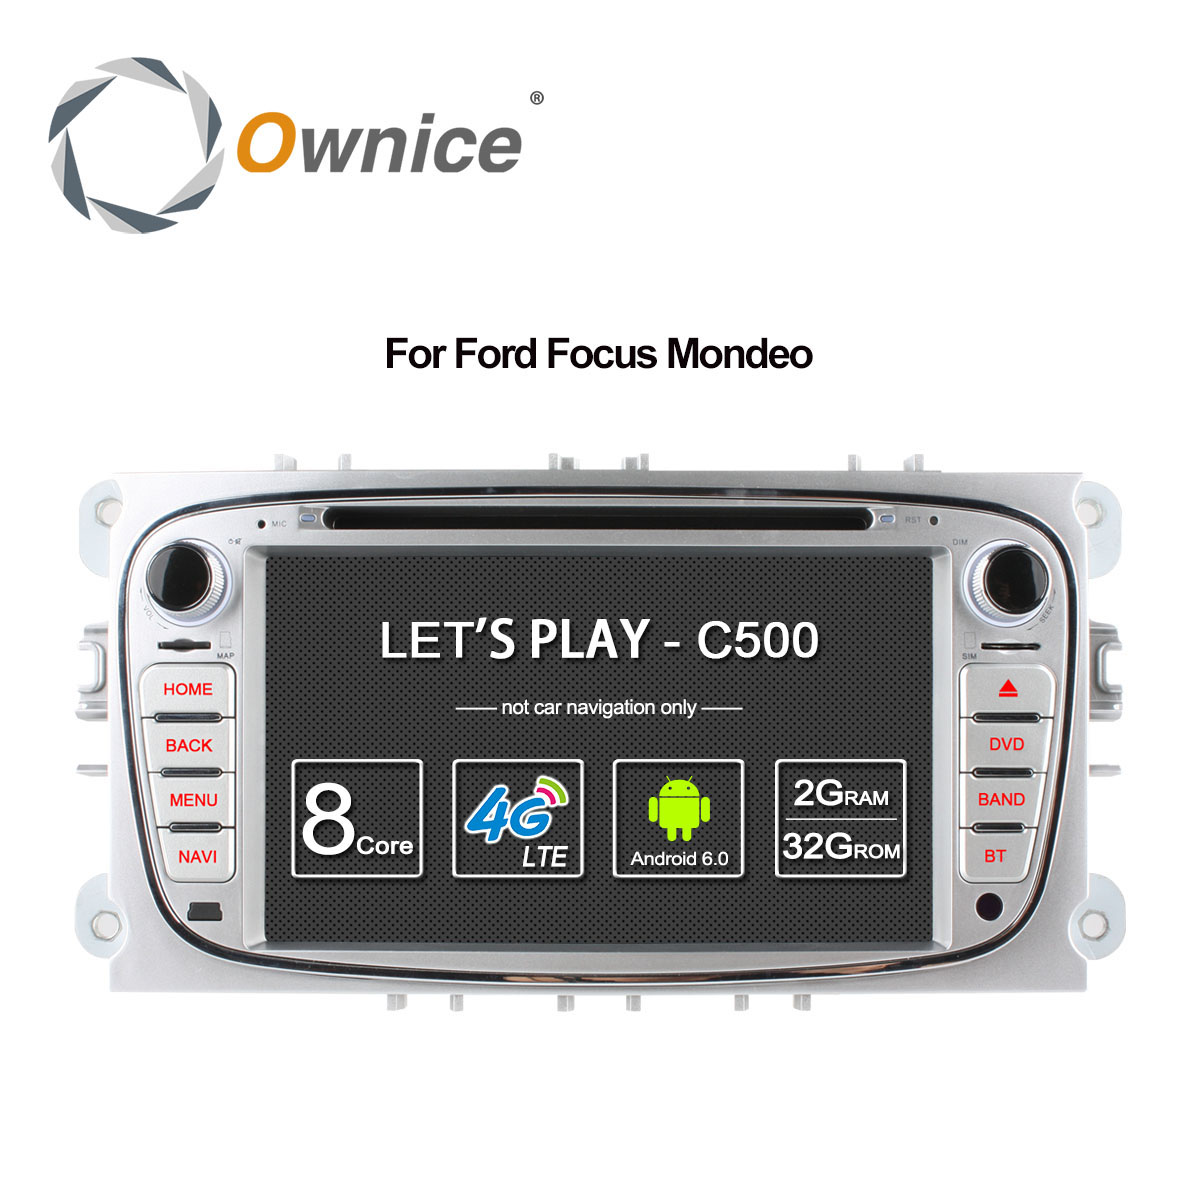 Ownice C500 4G LTE Android 6 0 Octa 8 Core font b Car b font DVD